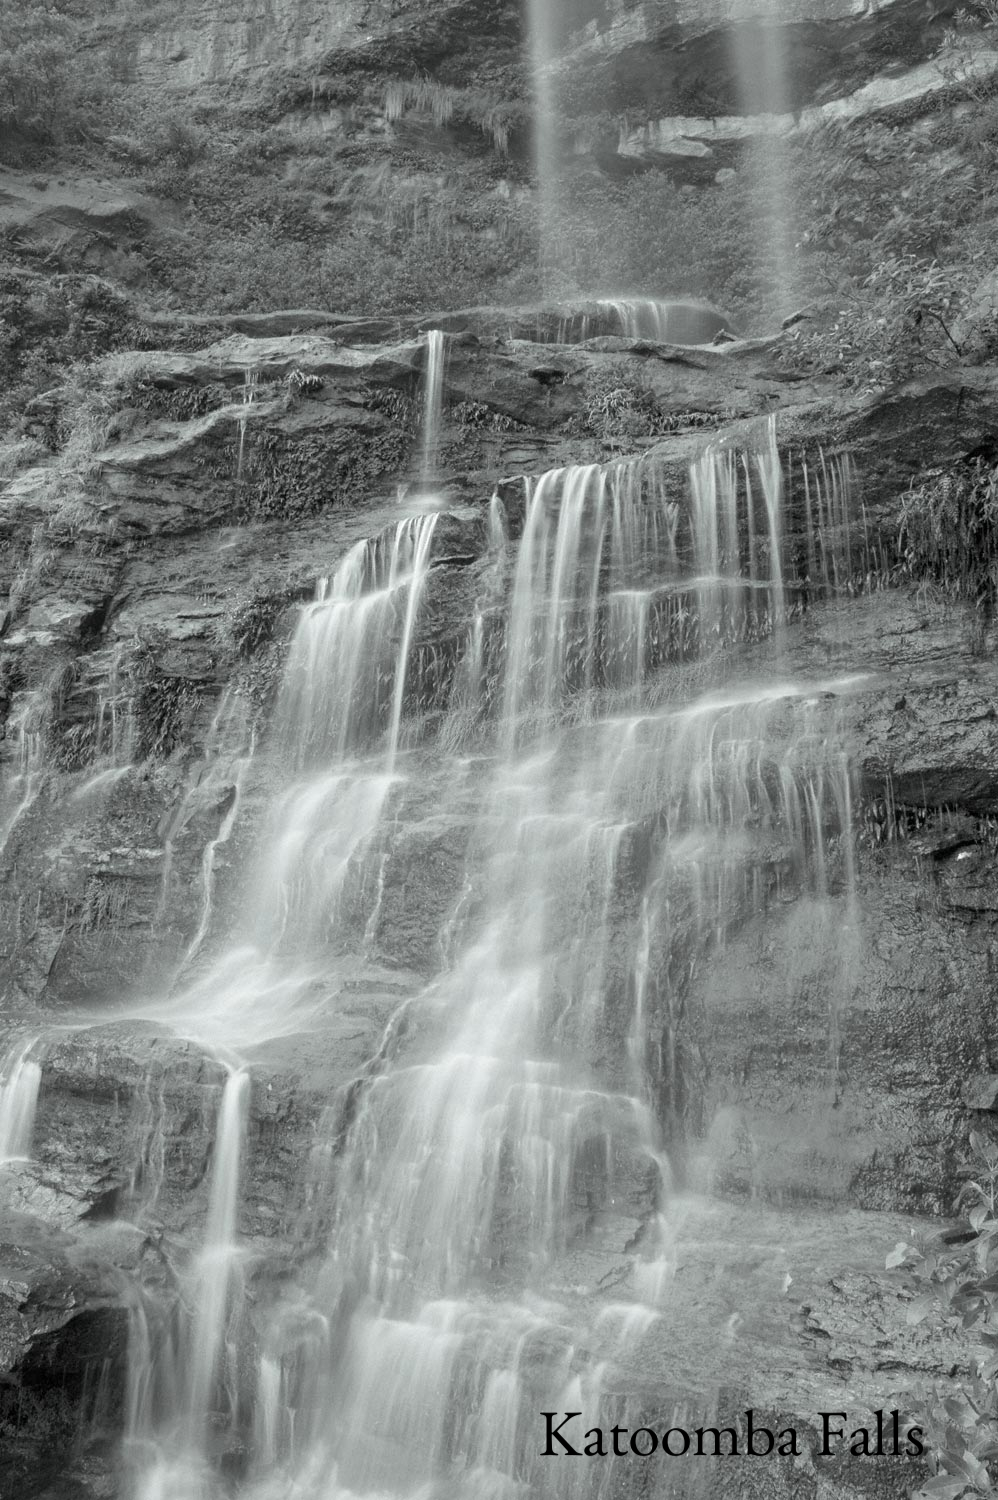 Warren-Hinder-Katoomba-Falls.jpg